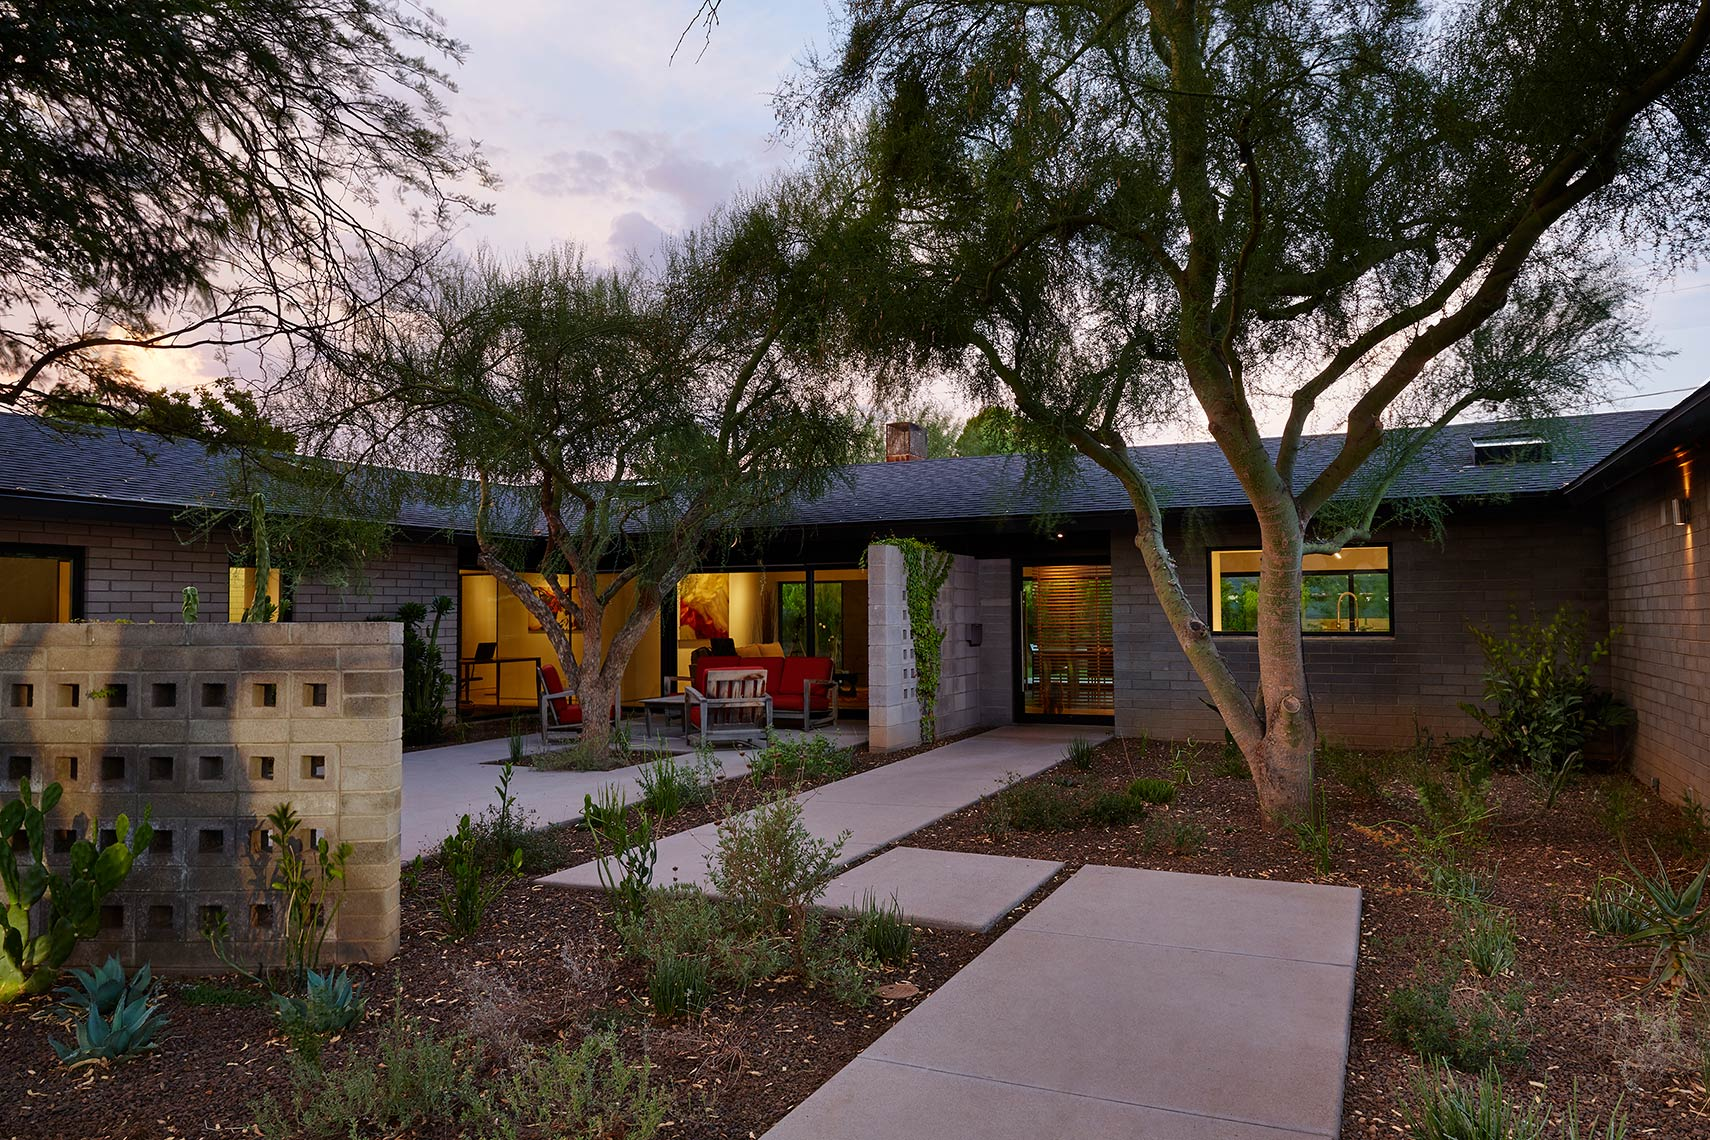 Elm Street -  Architectural Photographer - Steve Craft Photography - Phoenix, Arizona